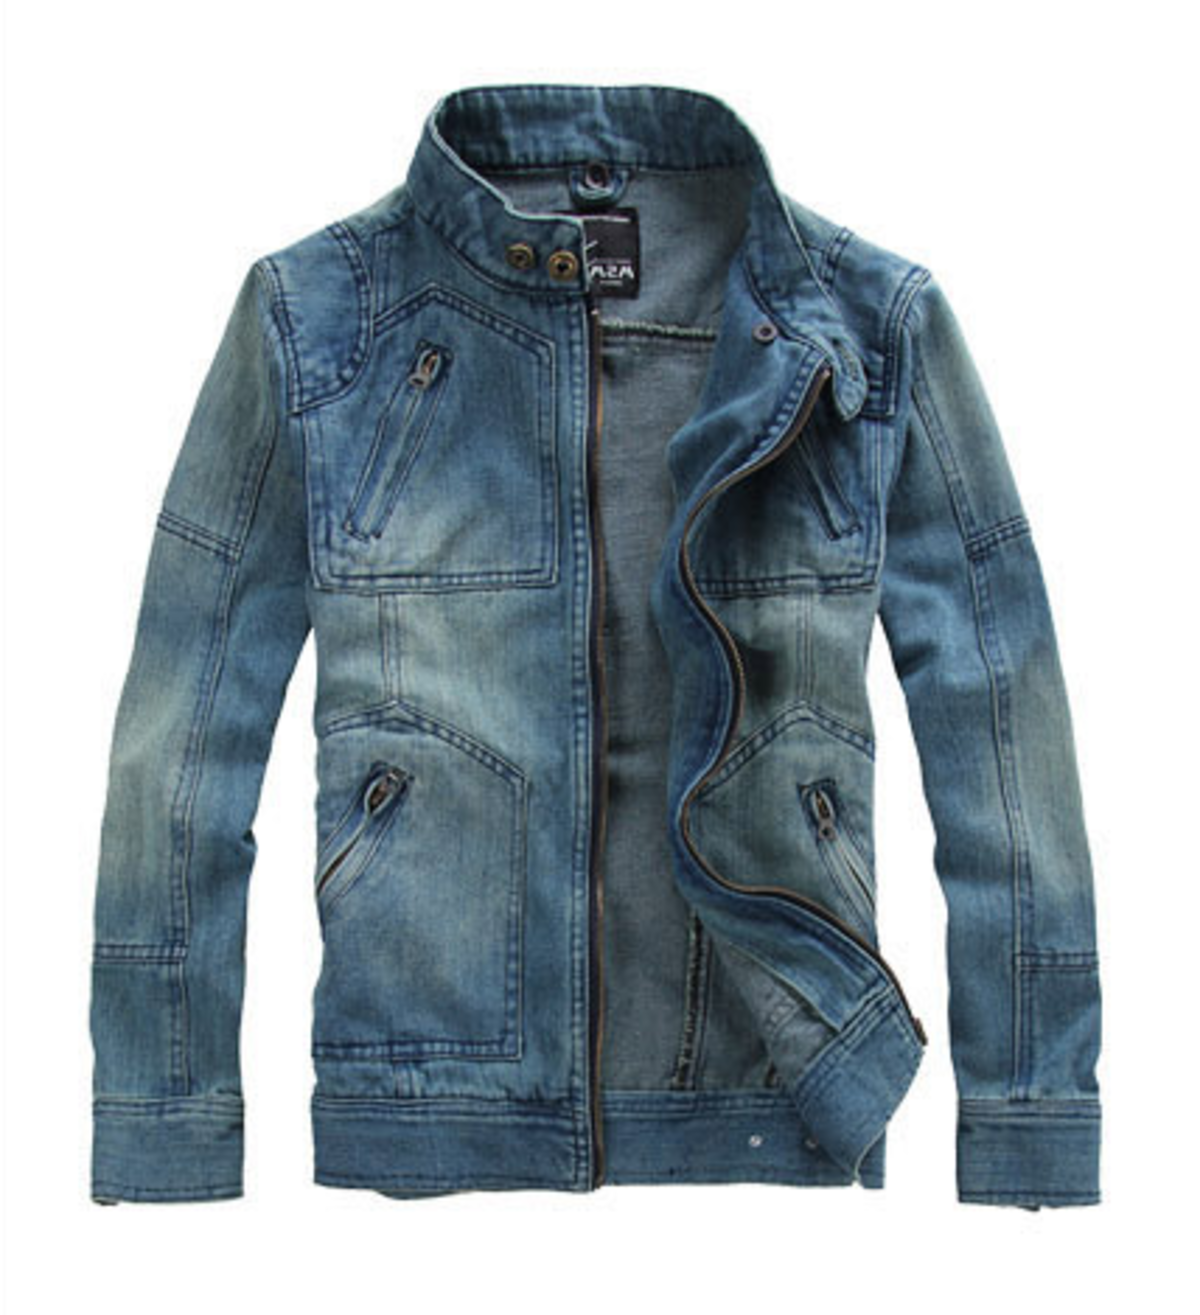 Mens Denim Jean Jacket with Removable Hood